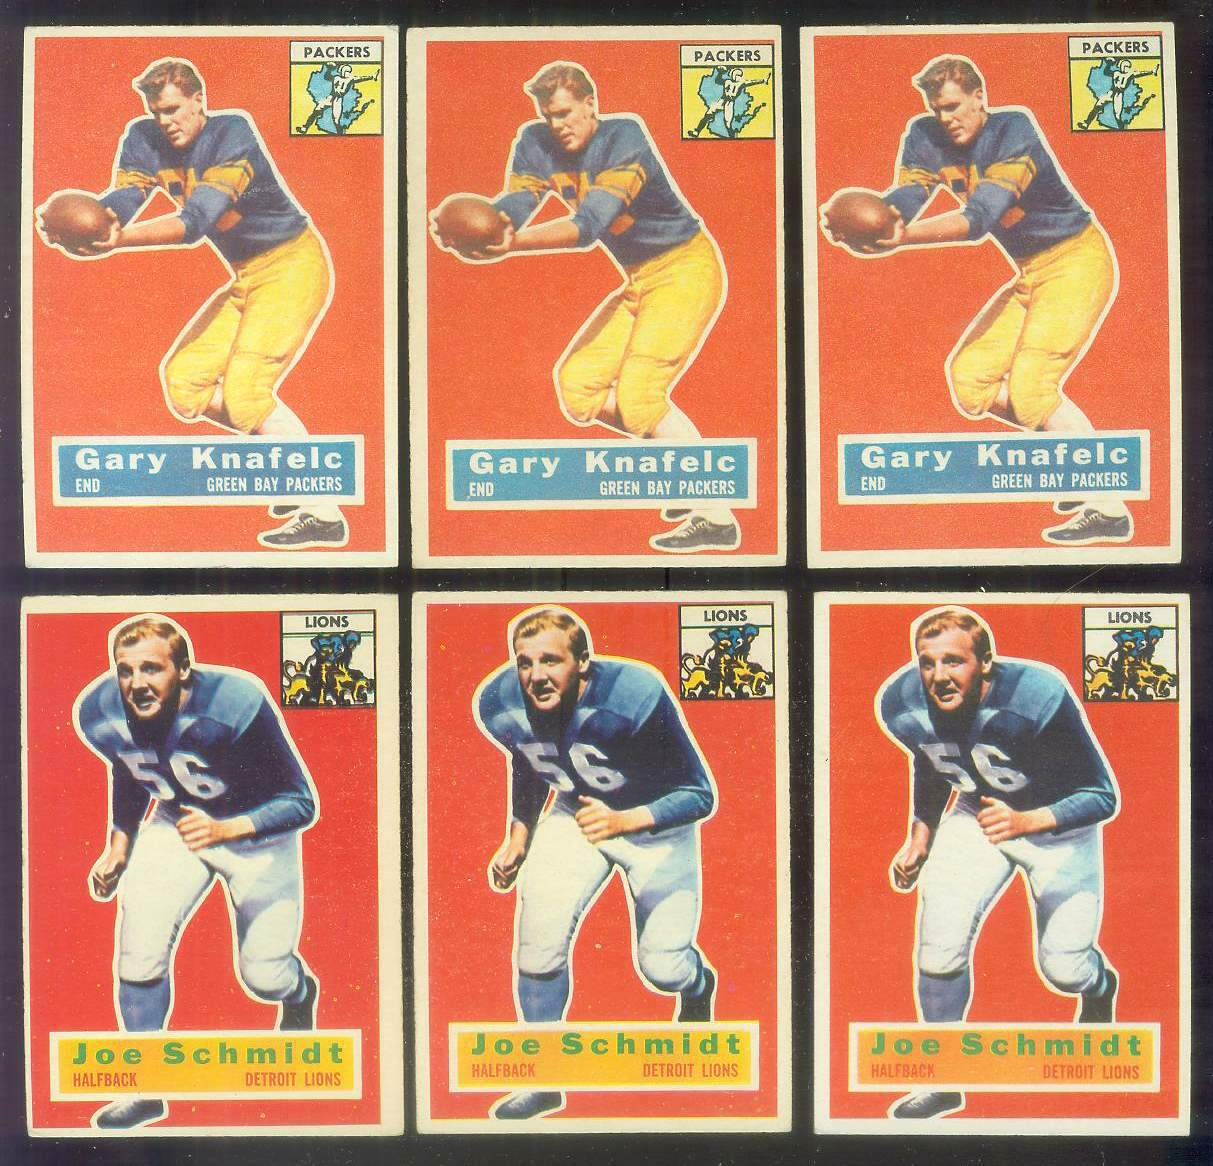 1956 Topps FB #.44 Joe Schmidt ROOKIE (Lions) Football cards value